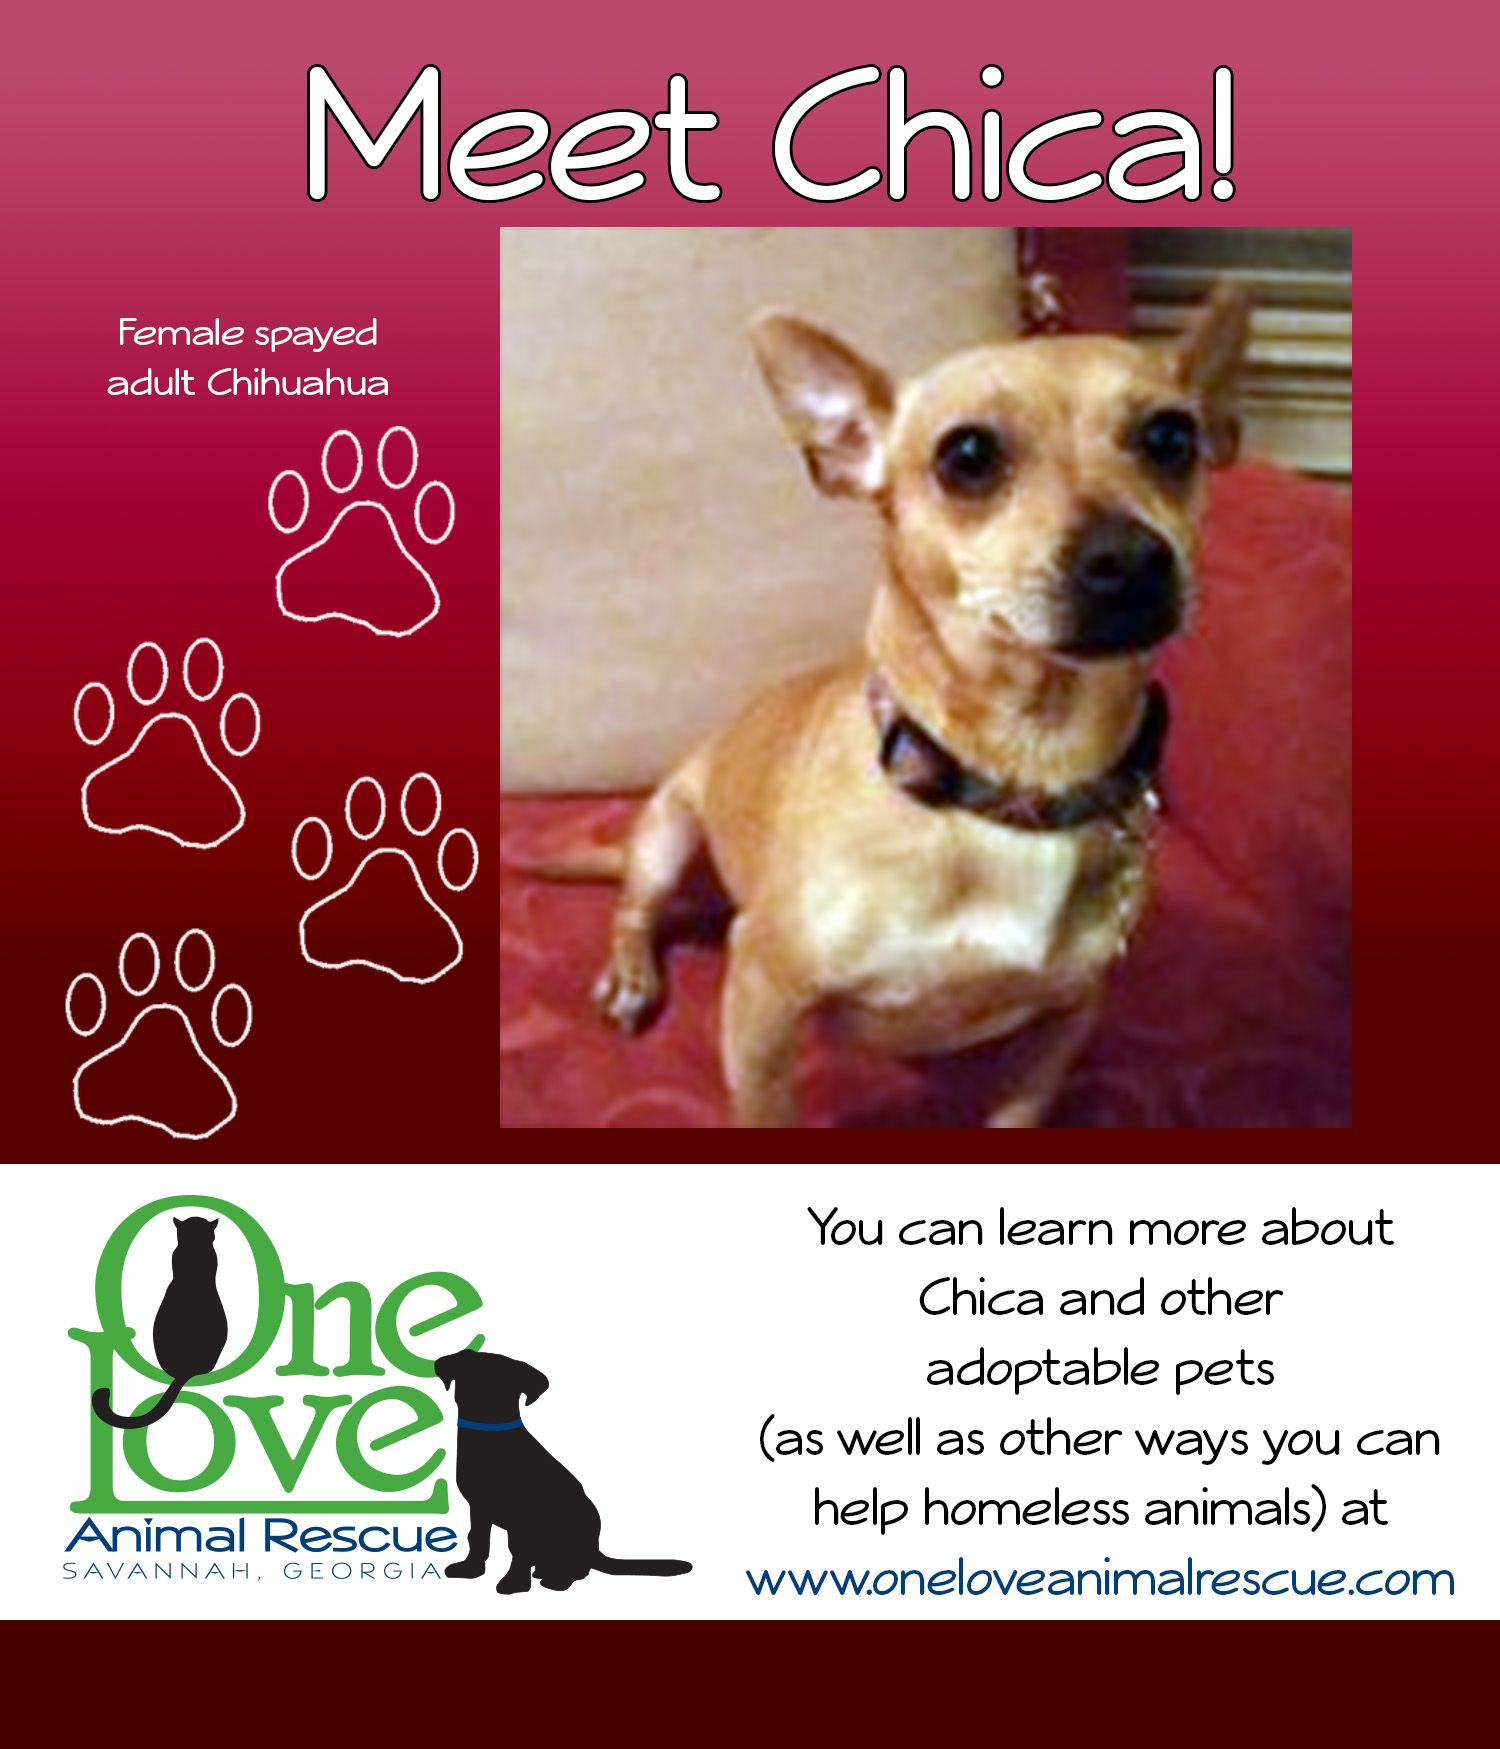 Pin by One Love Animal Rescue GA on HAPPY TAILS! ADOPTED